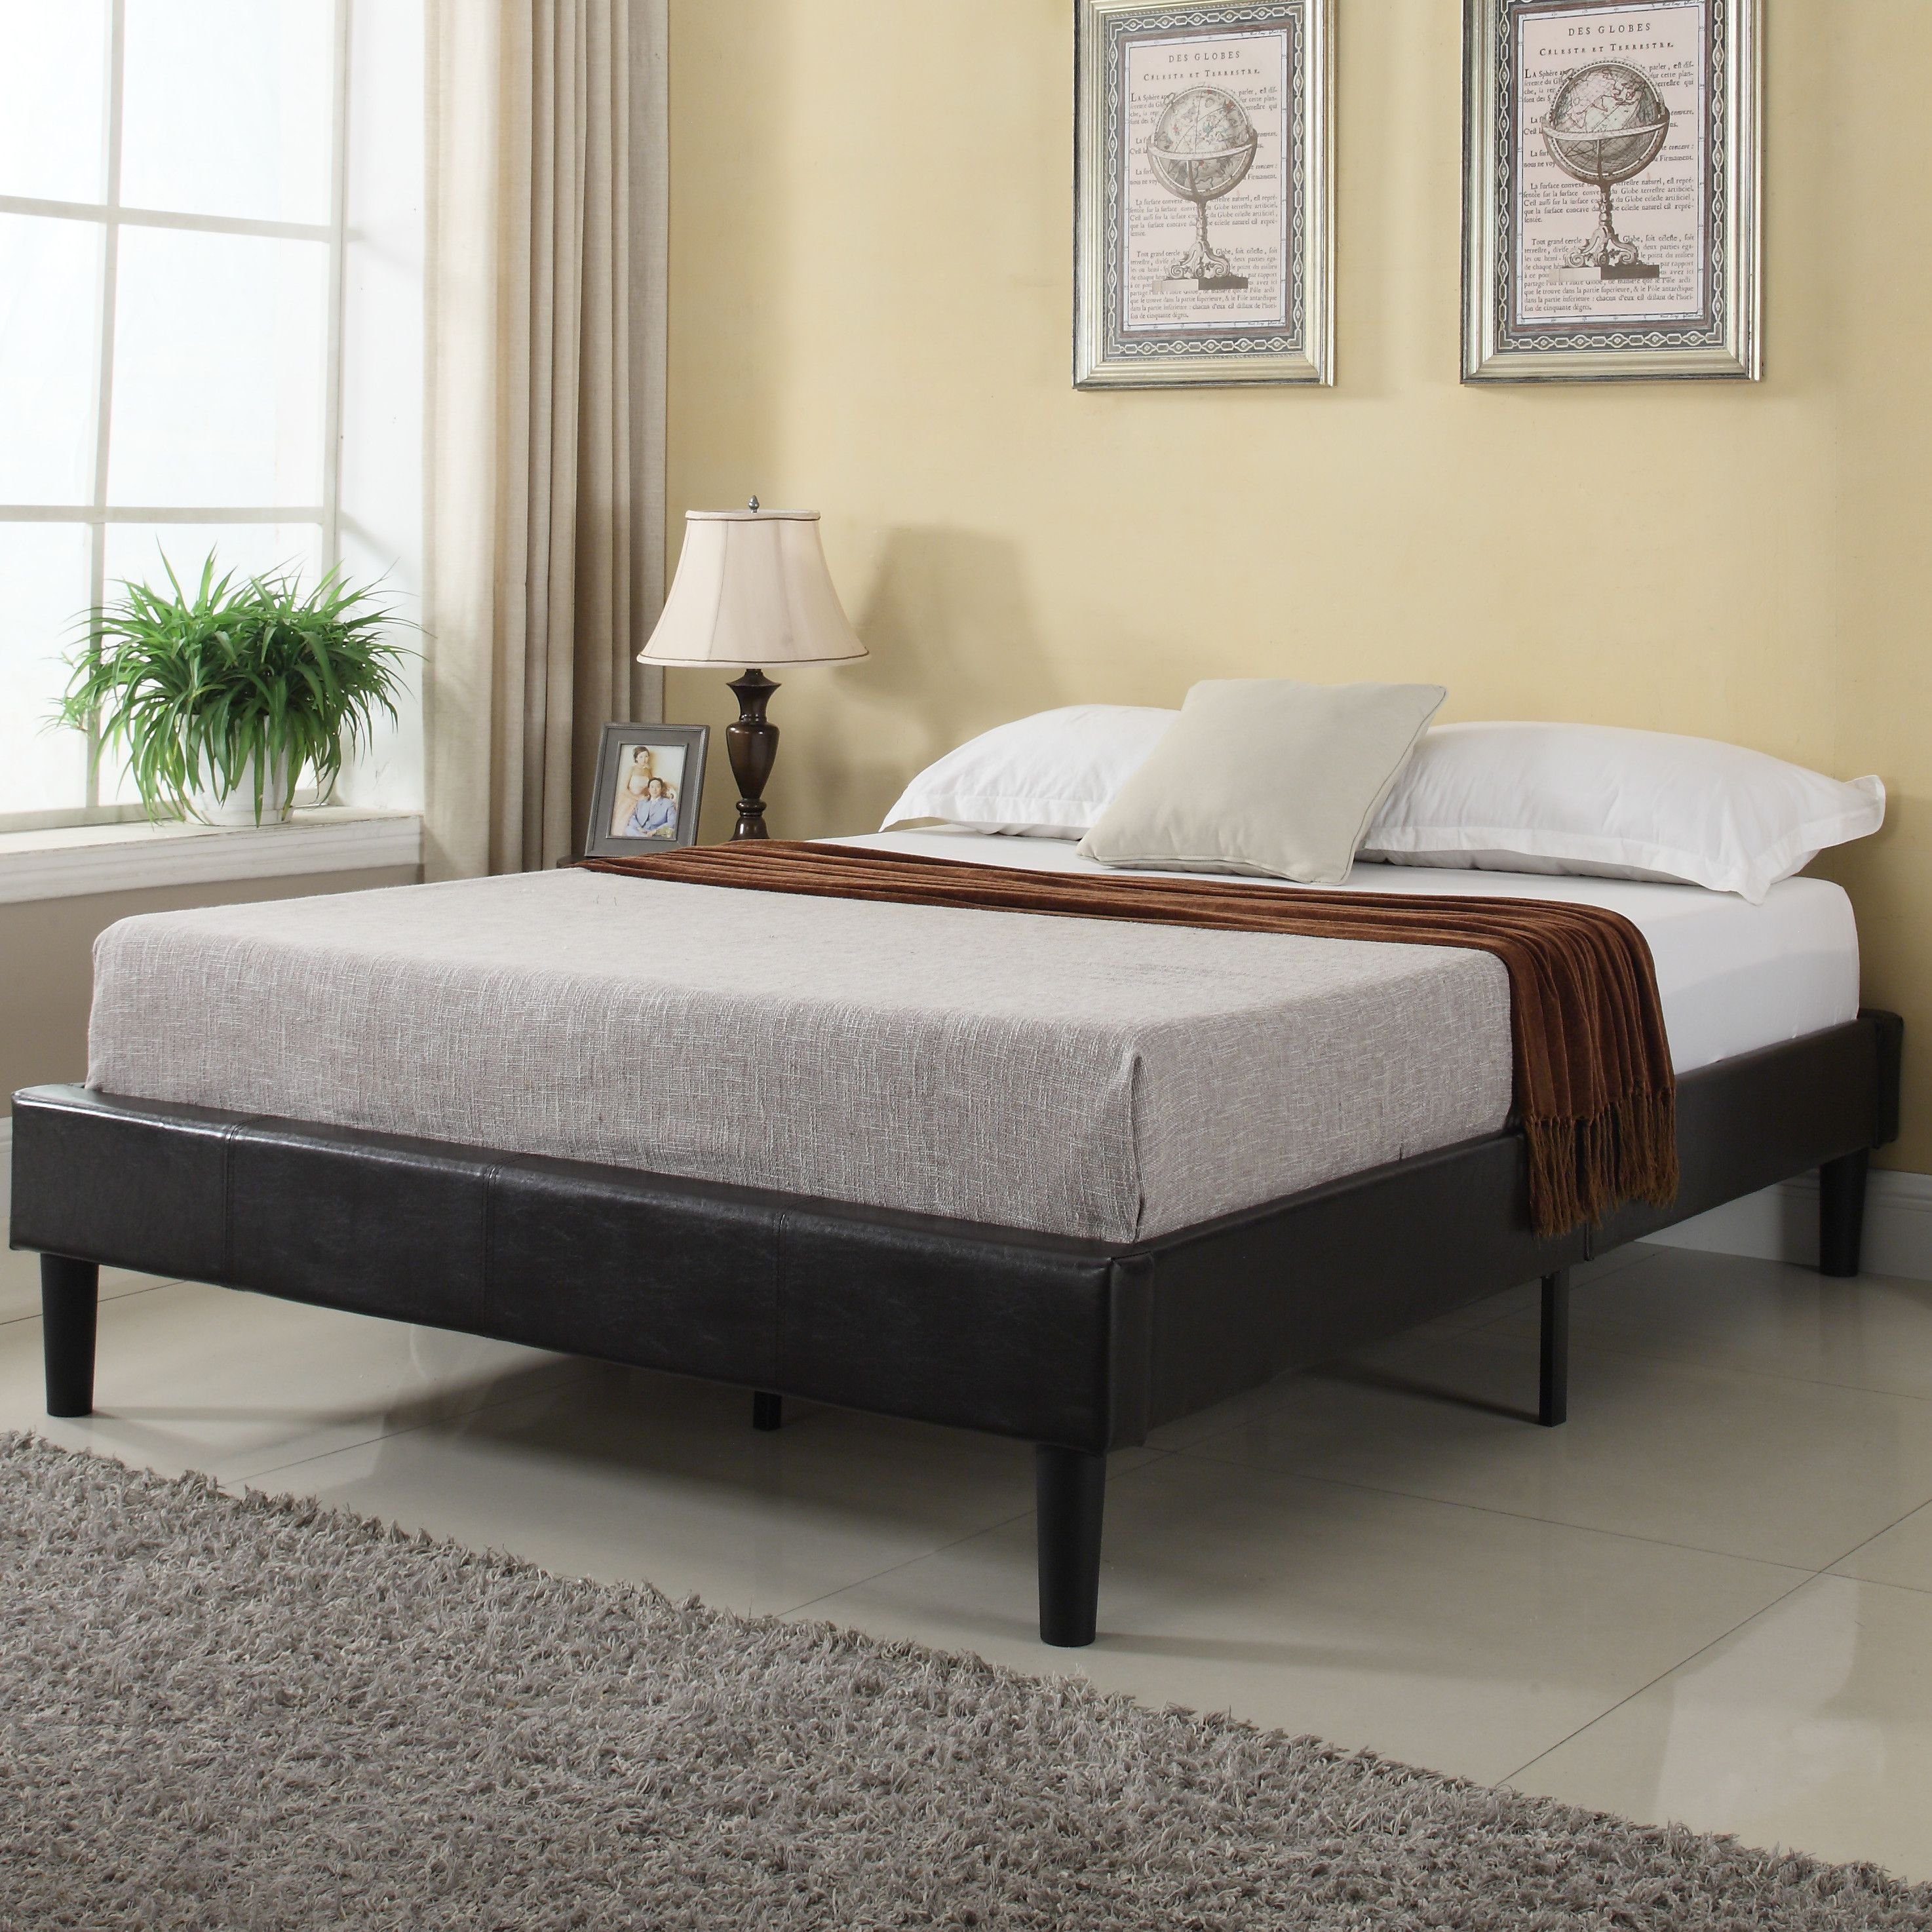 Shop Wayfair for Beds to match every style and budget. Enjoy Free ...